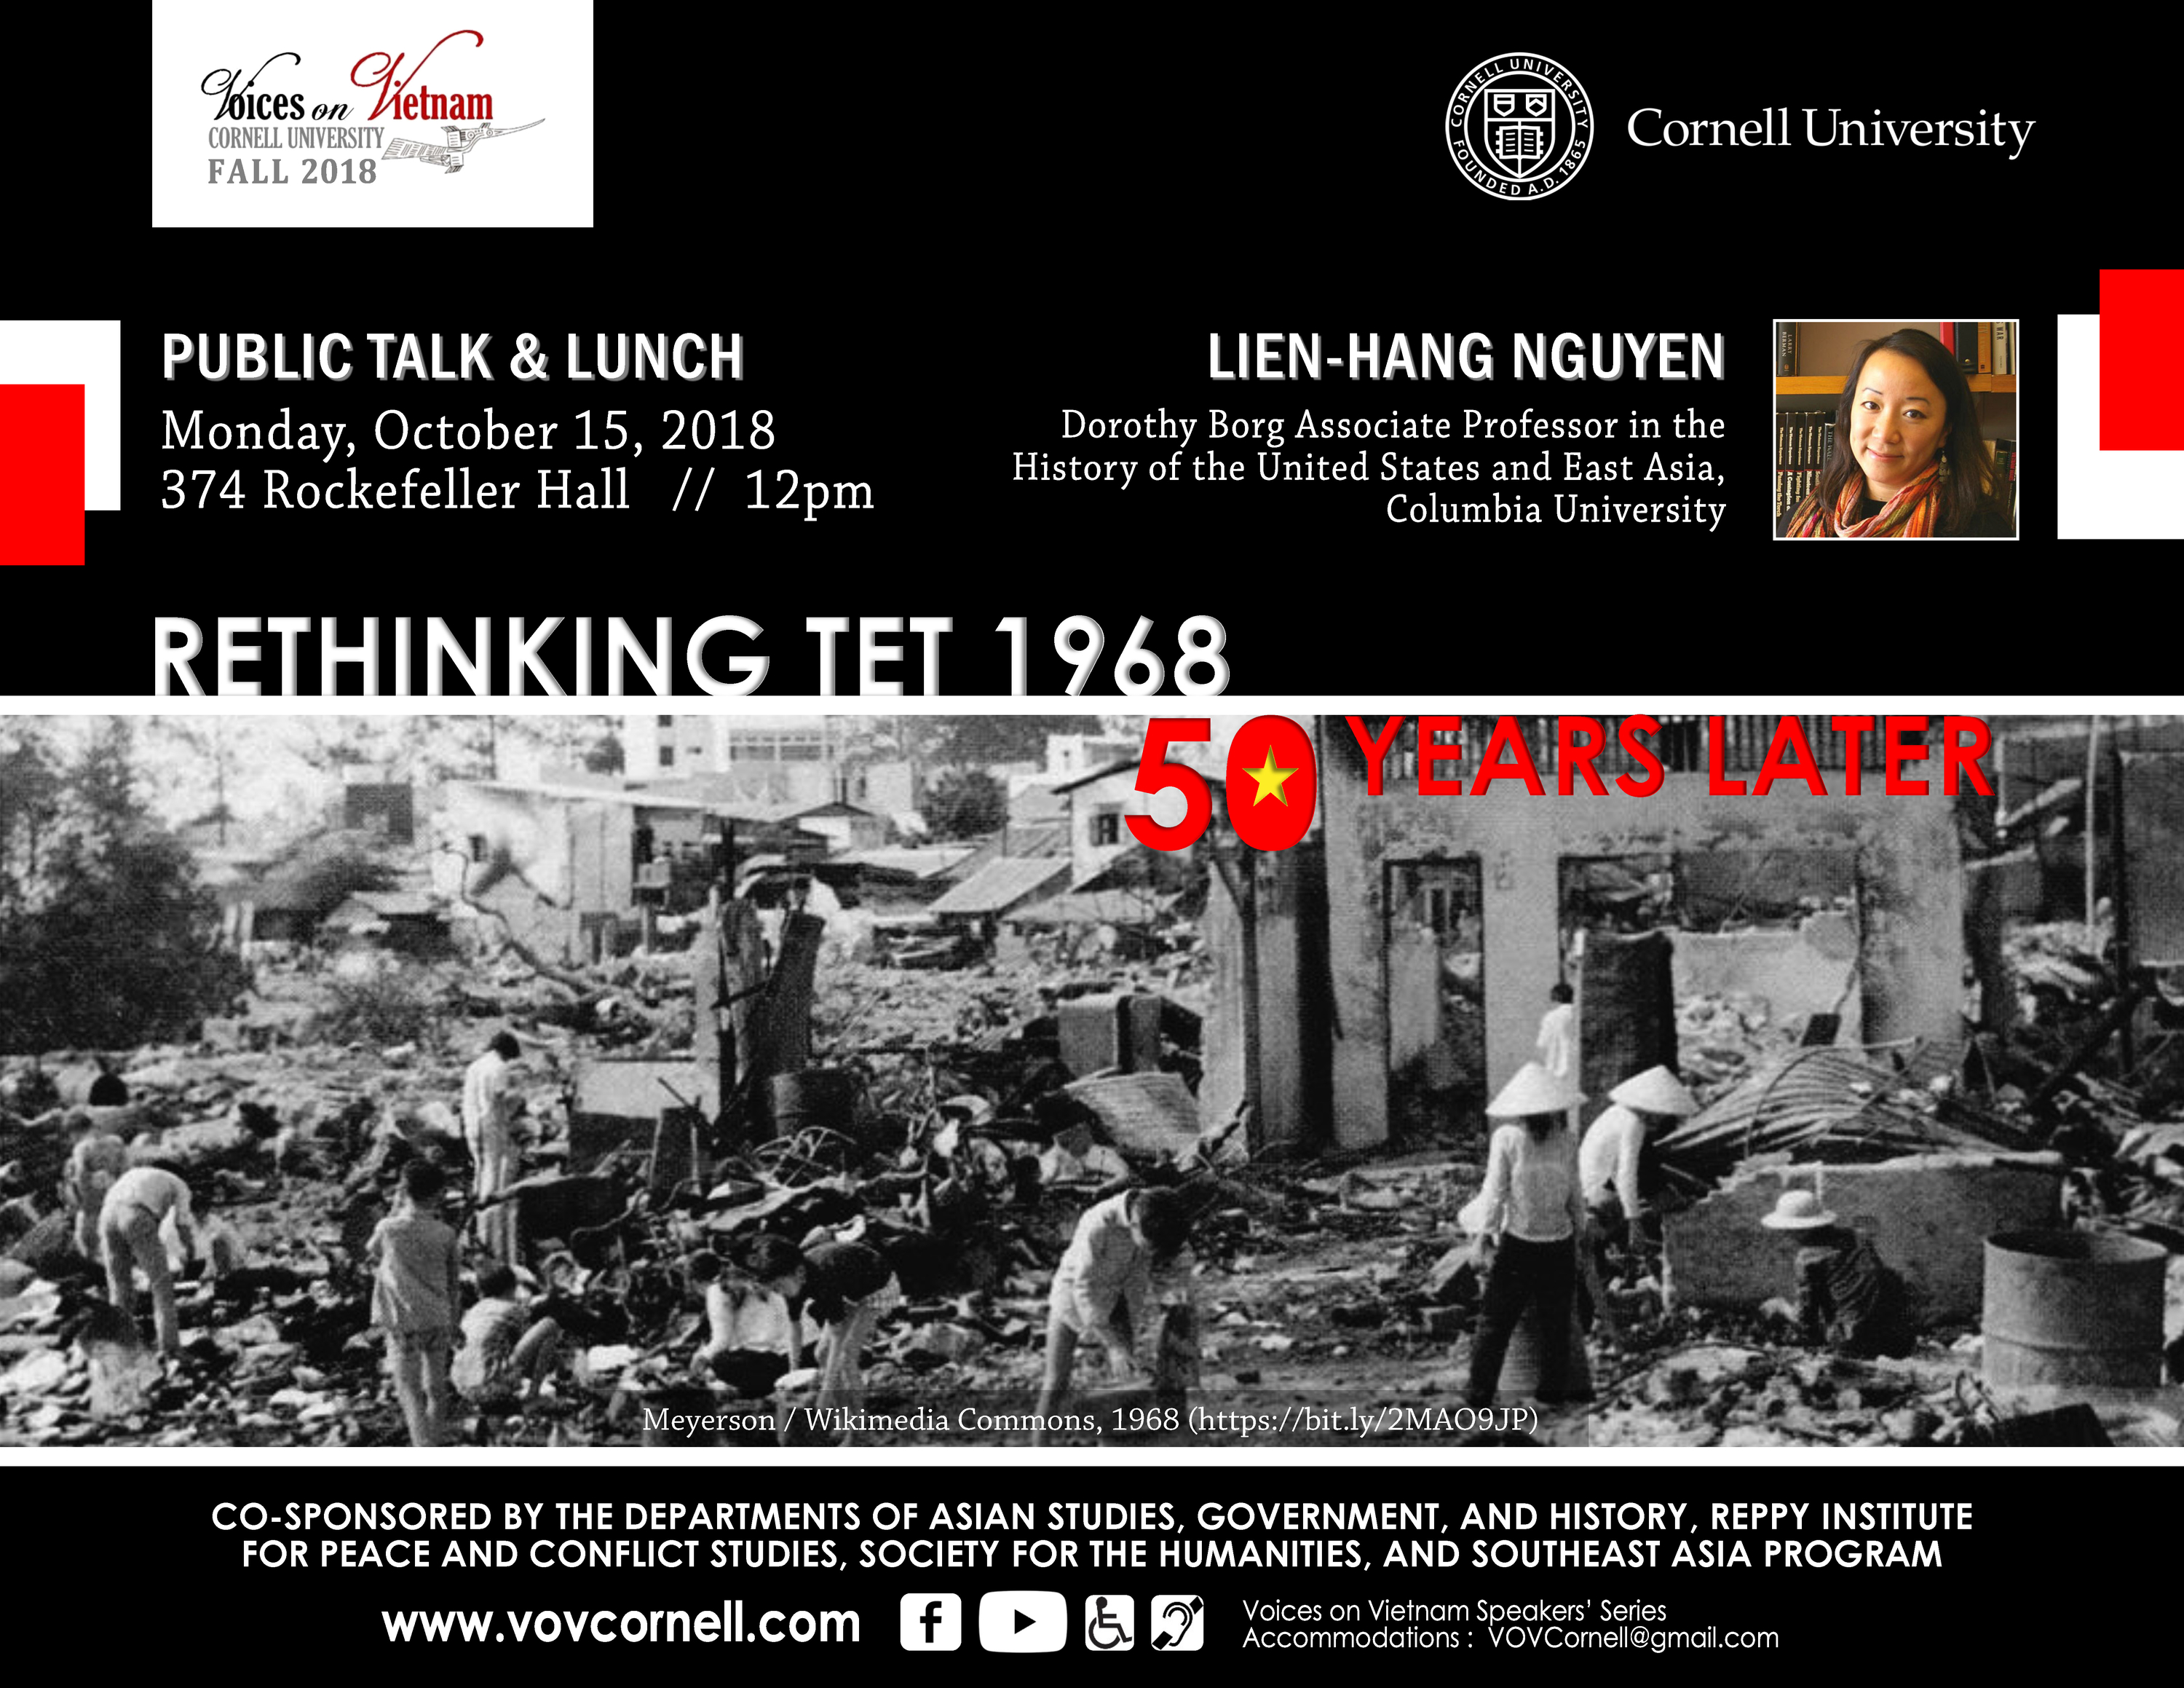 """""""Rethinking Tet 1968: Fifty Years Later,"""" a Voices on Vietnam Speakers' Series event featuring Professor Lien-Hang Nguyen"""